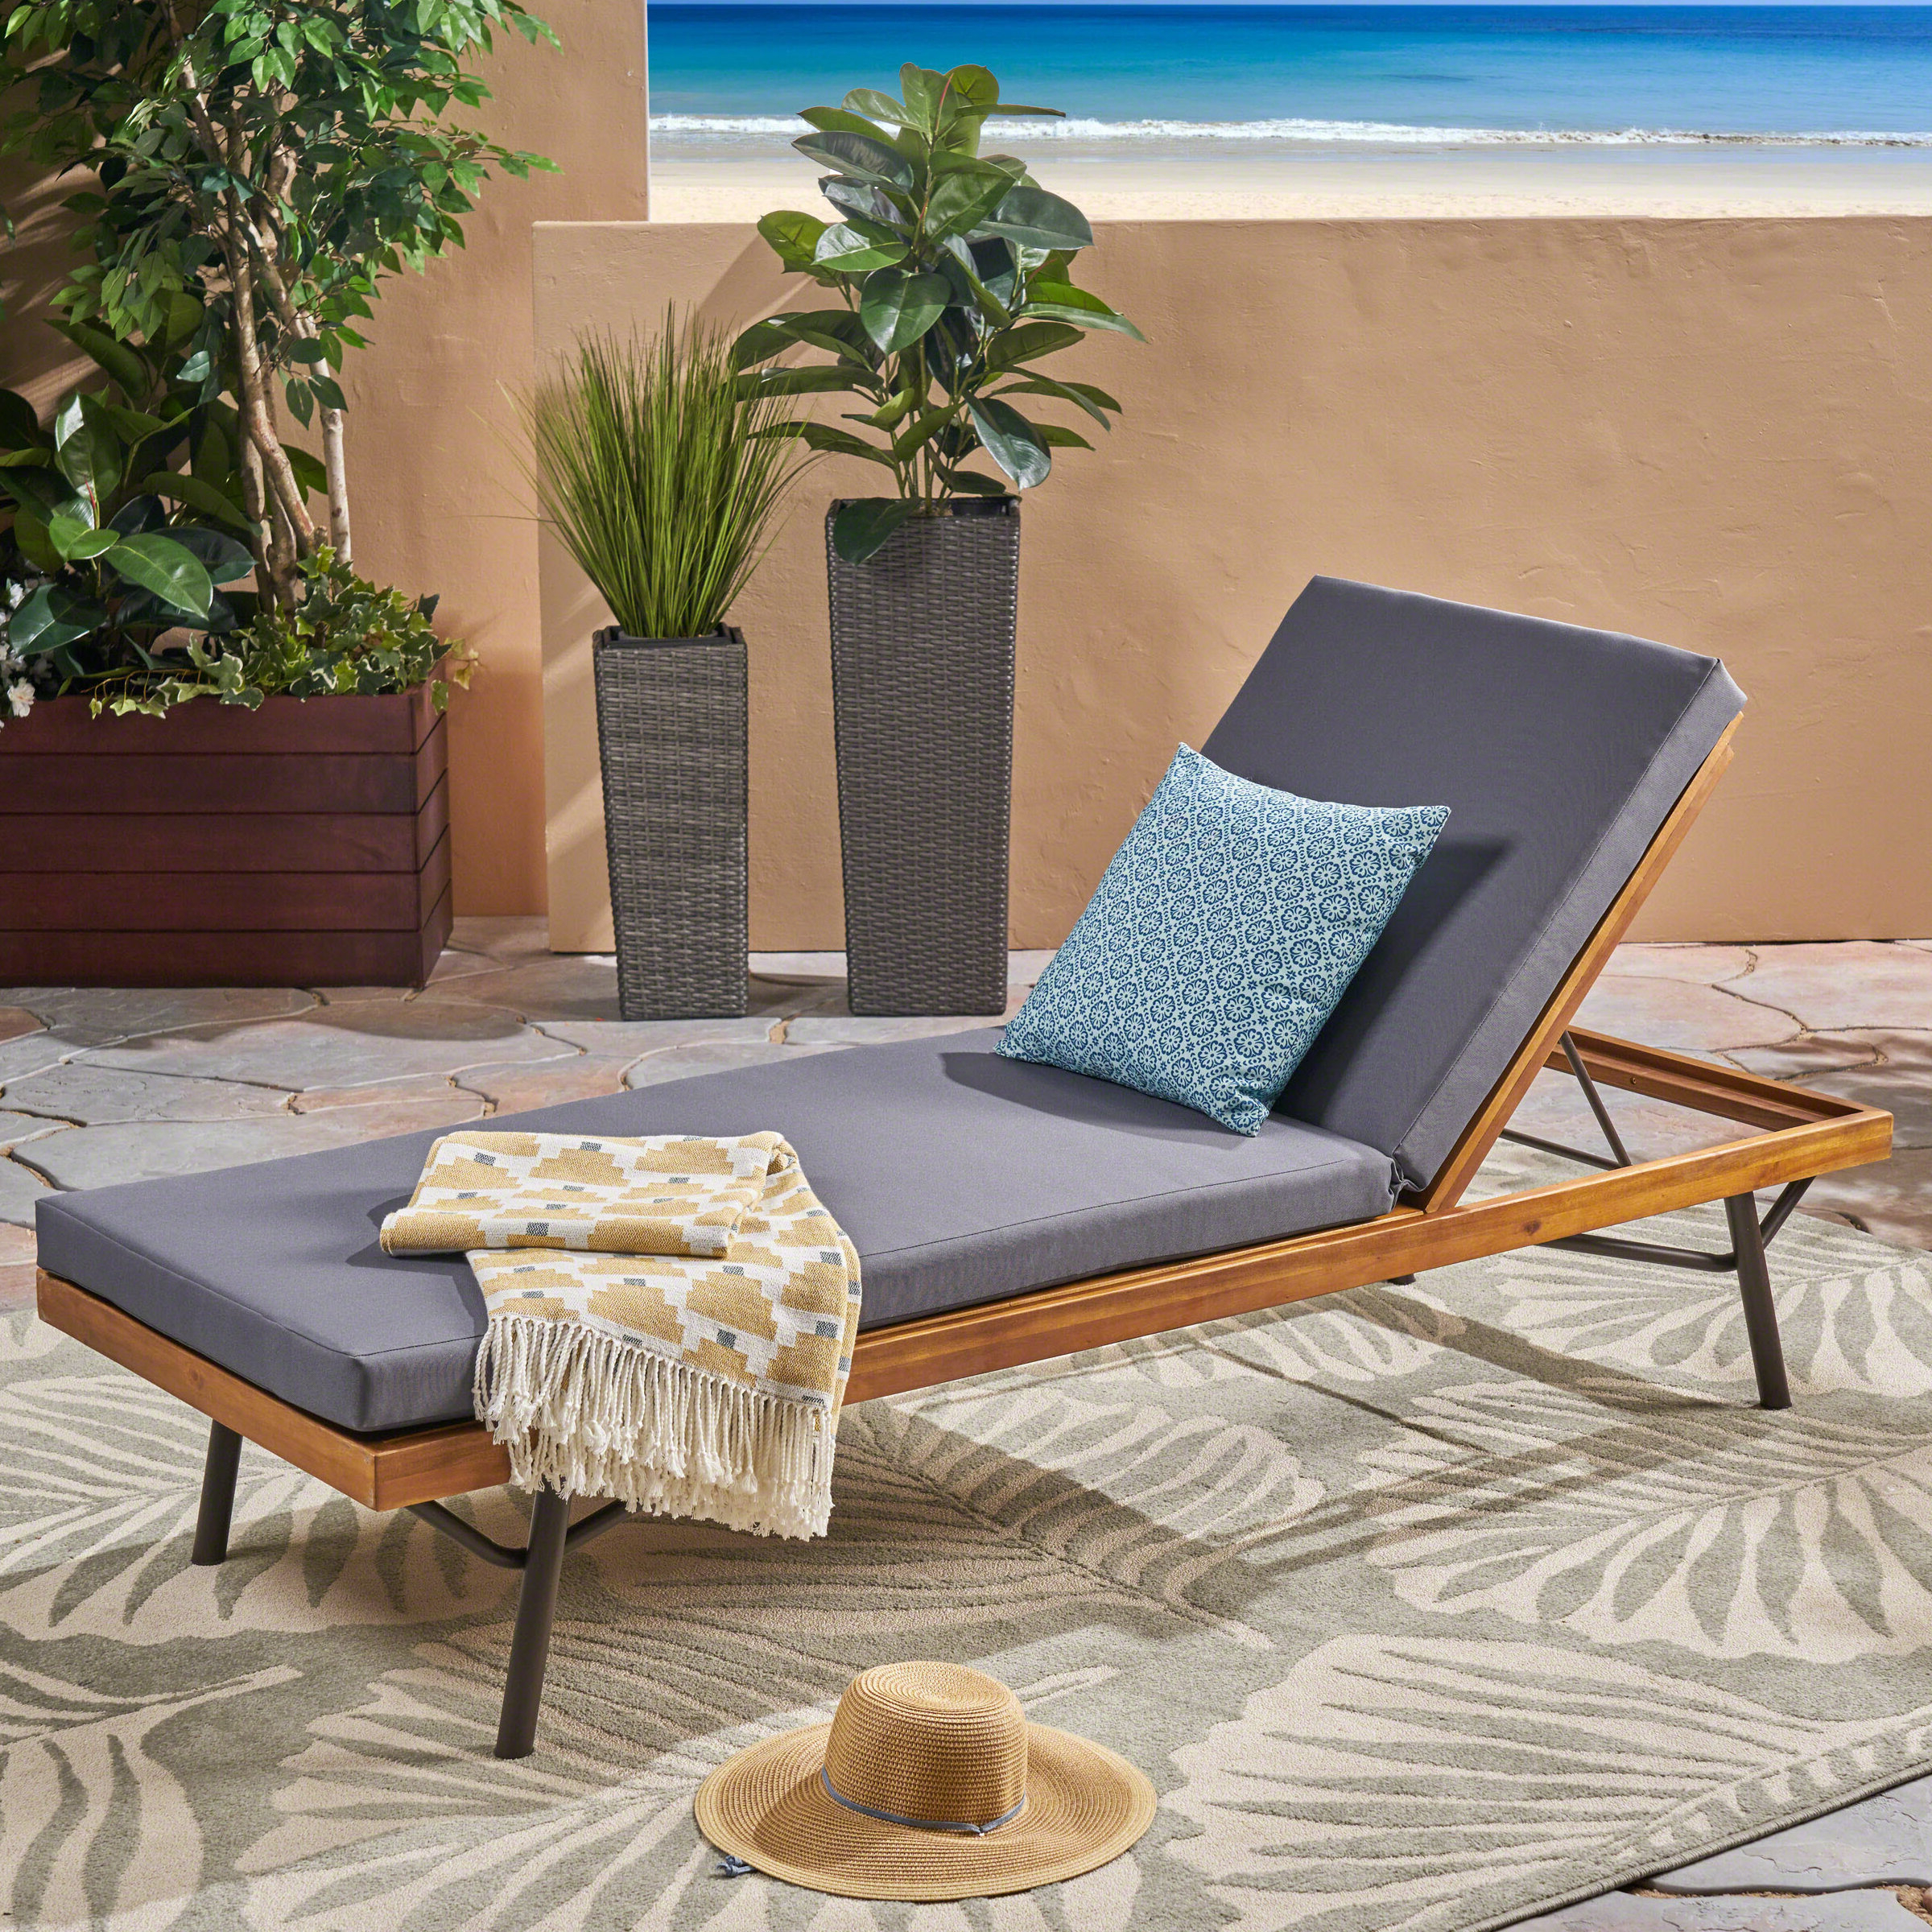 Berghauser Reclining Chaise Lounge With Cushion With Regard To Popular Eucalyptus Teak Finish Outdoor Chaise Loungers With Cushion (Gallery 21 of 25)